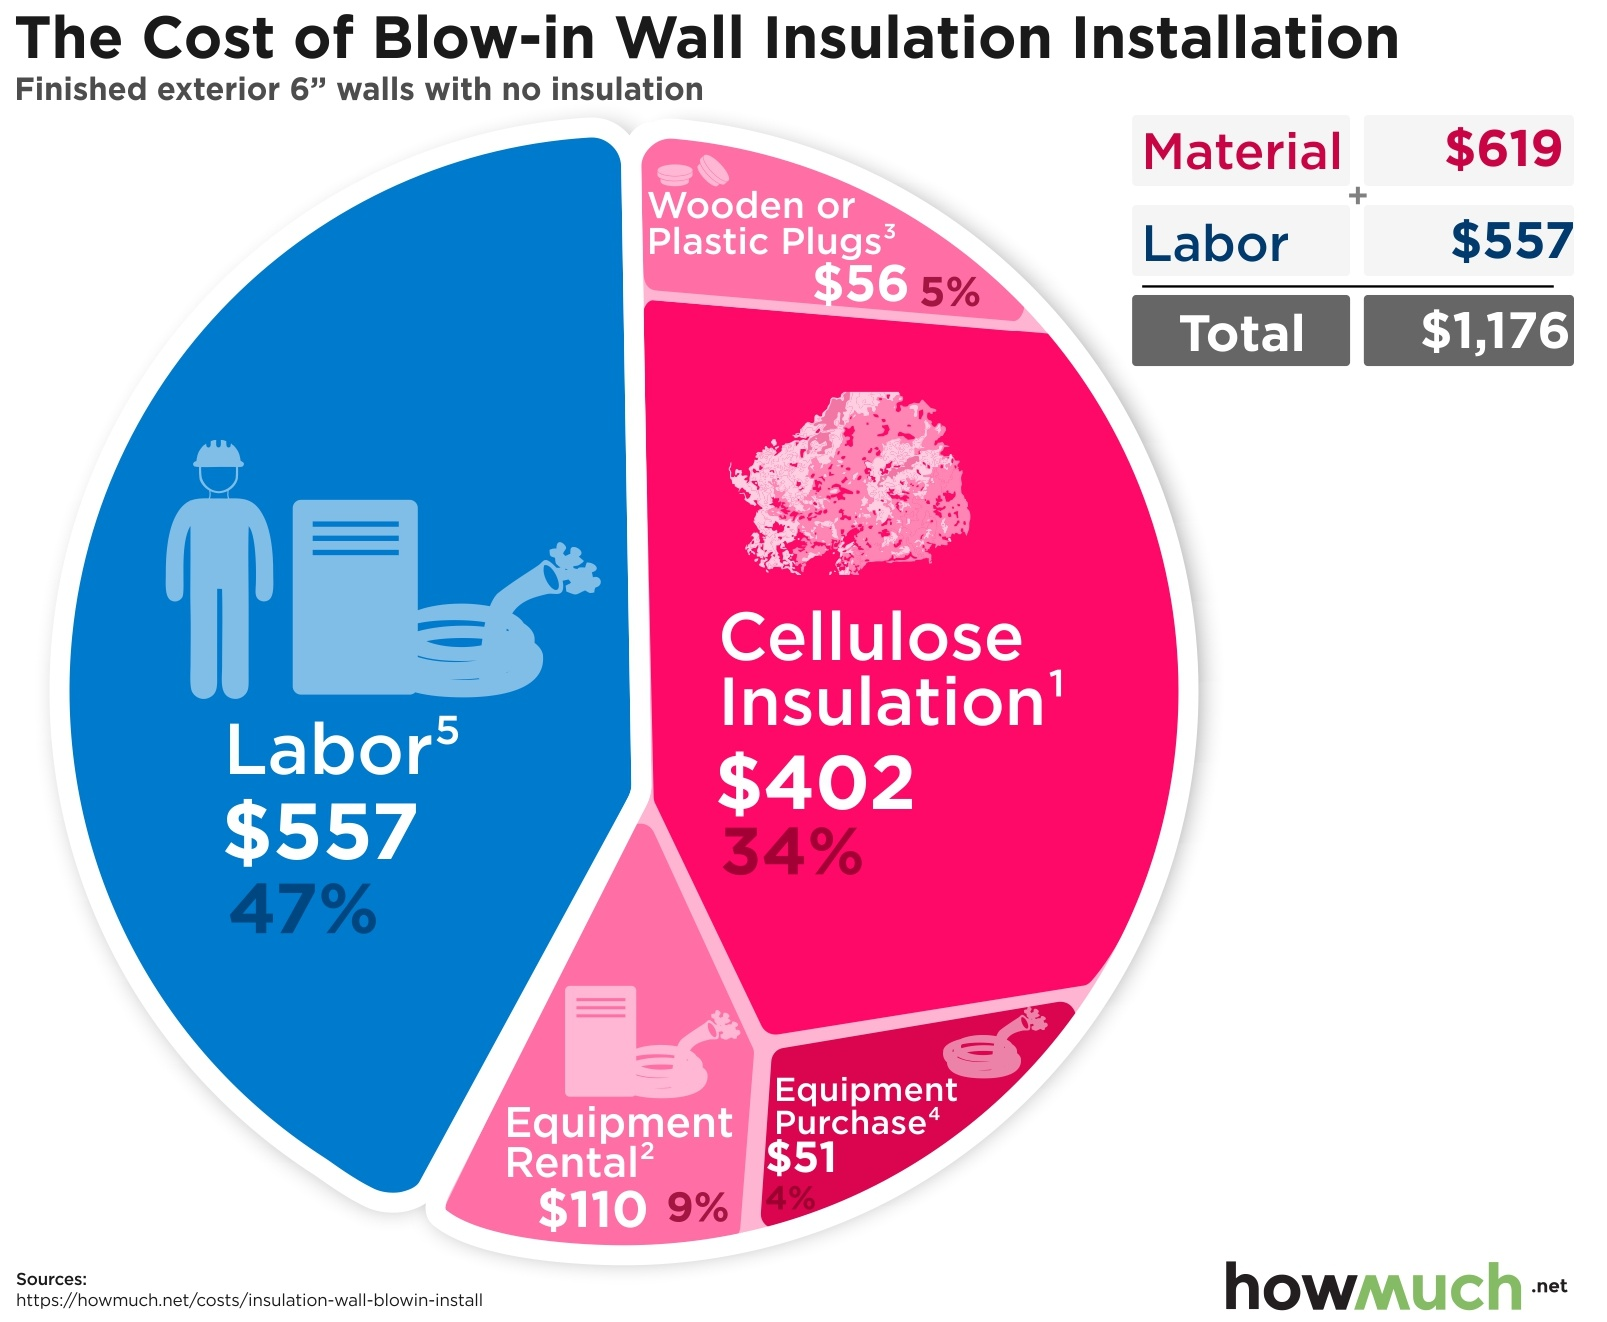 The Cost of Blow-in Wall Insulation Installation